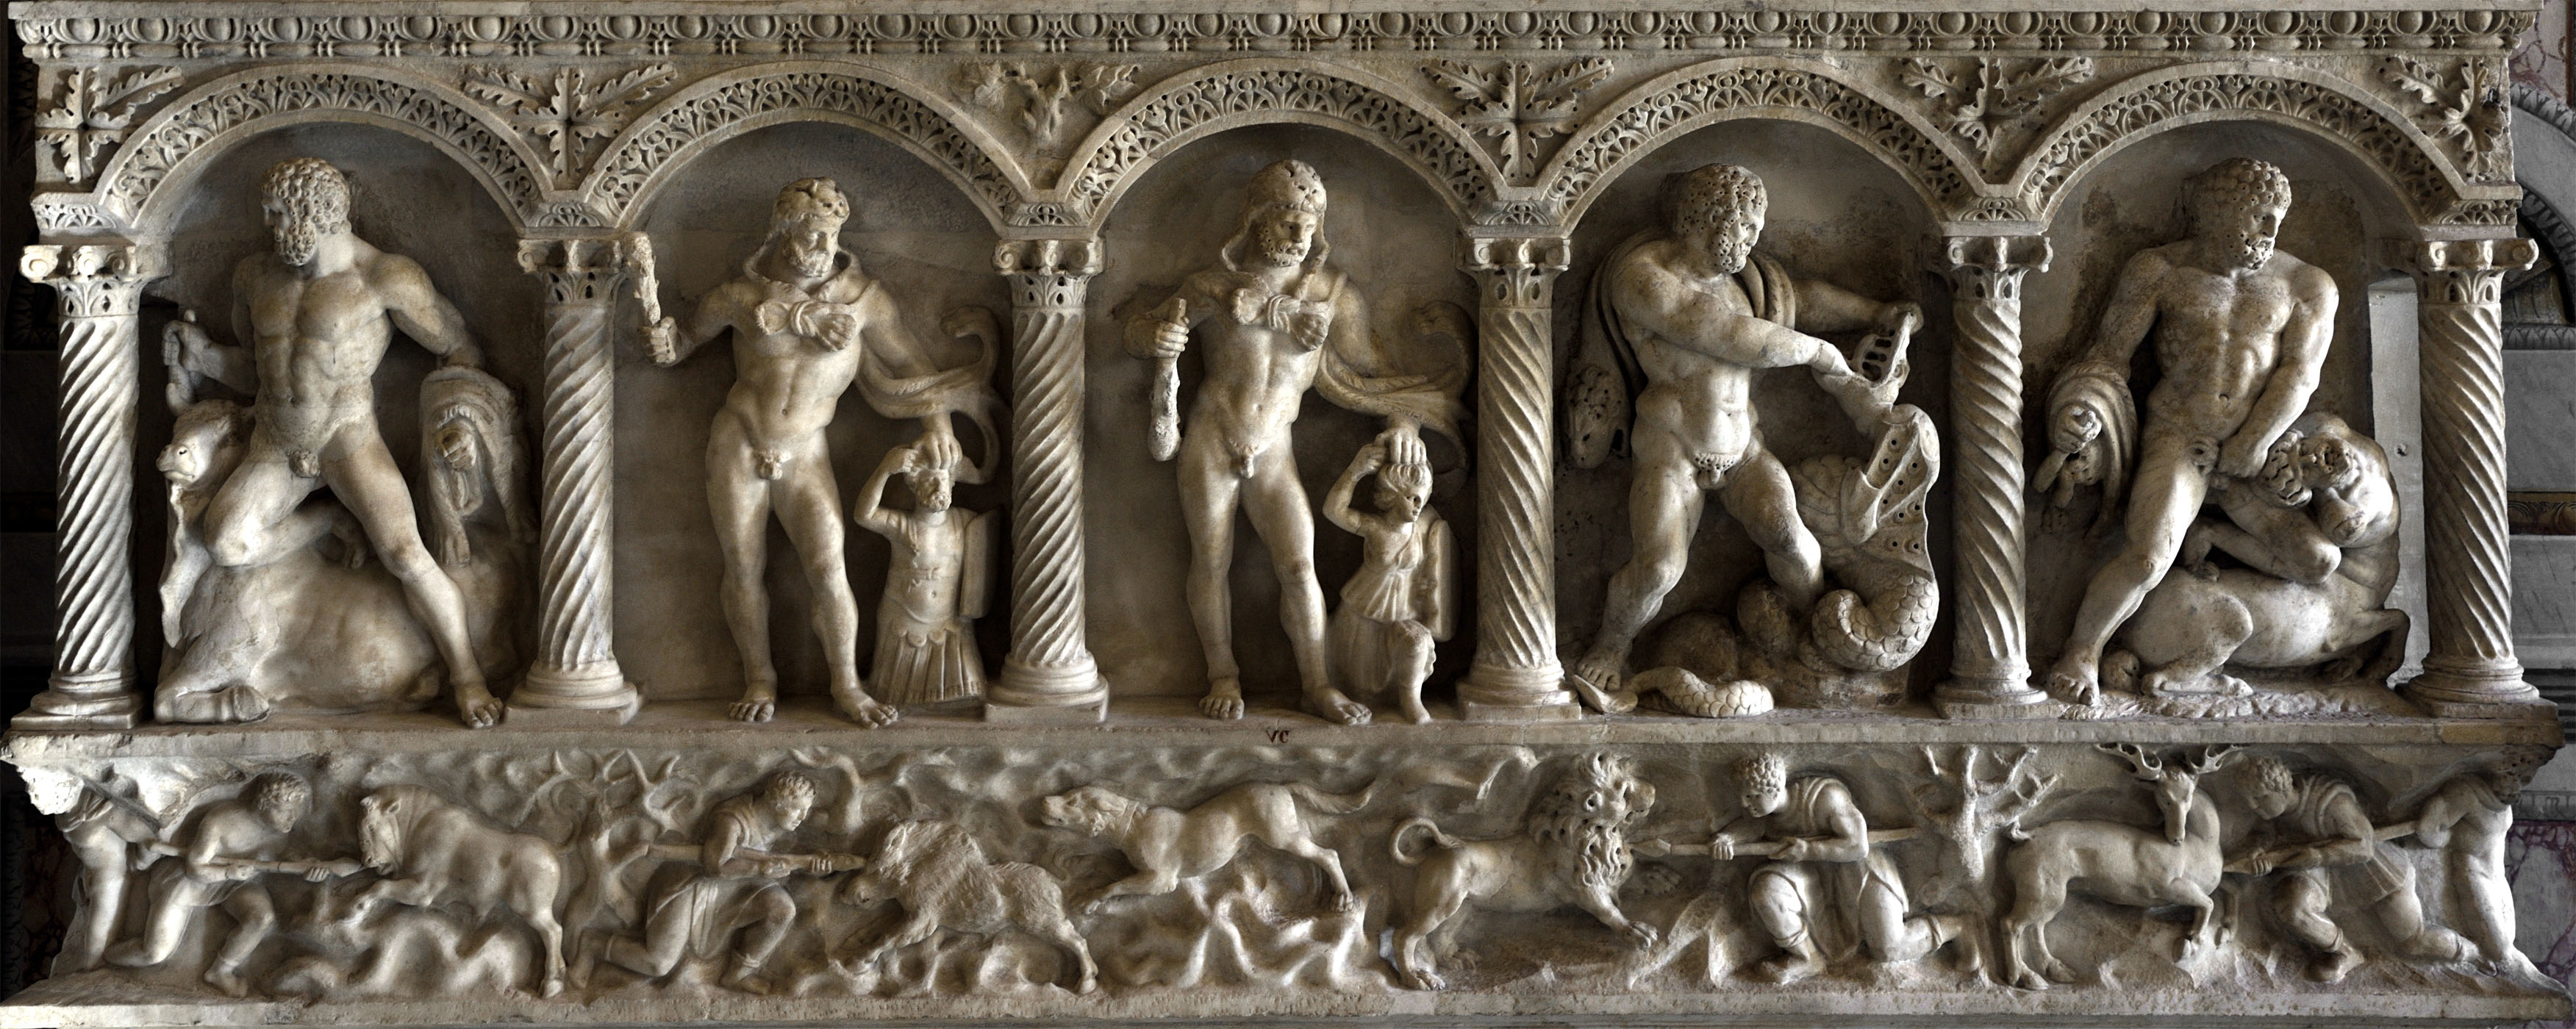 Rear of columnar sarcophagus showing the Labours of Heracles and scenes of hunt. Marble. Upper register: modern work imitating the composition of the front panel (17th cent.). Lower register: 160 CE.  Inv. No. VC. Rome, Museum and Gallery of Villa Borghese, Room II